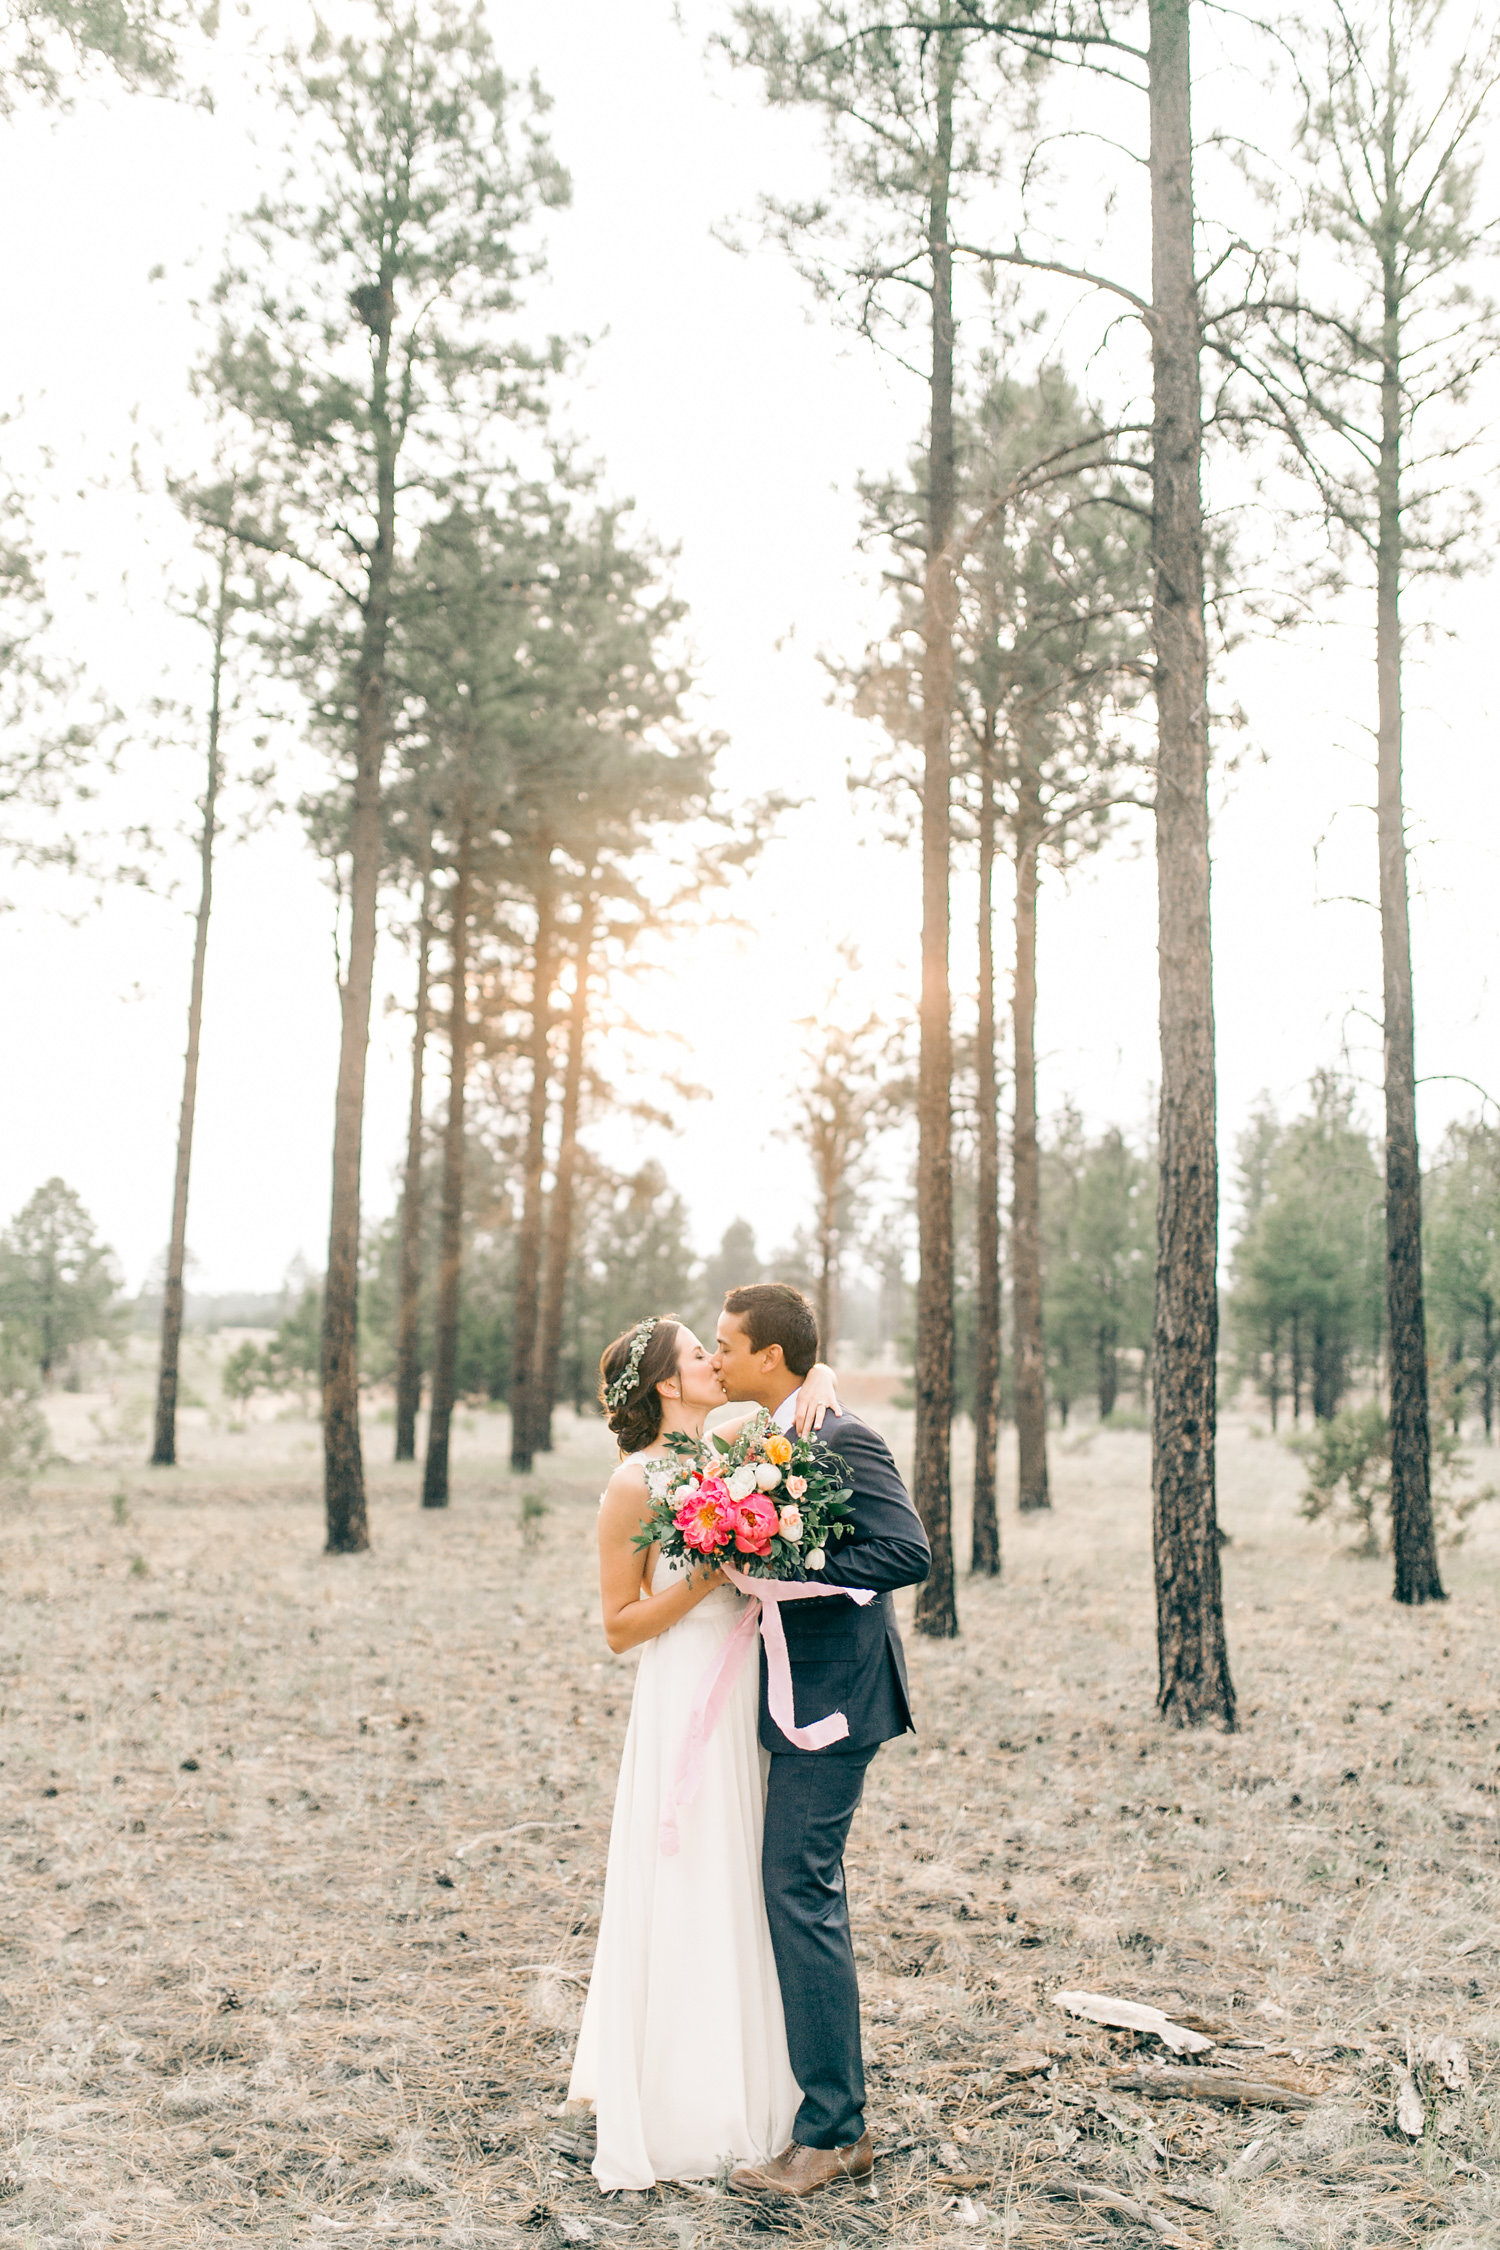 Colorful Cabin Wedding - Portraits Among the Trees